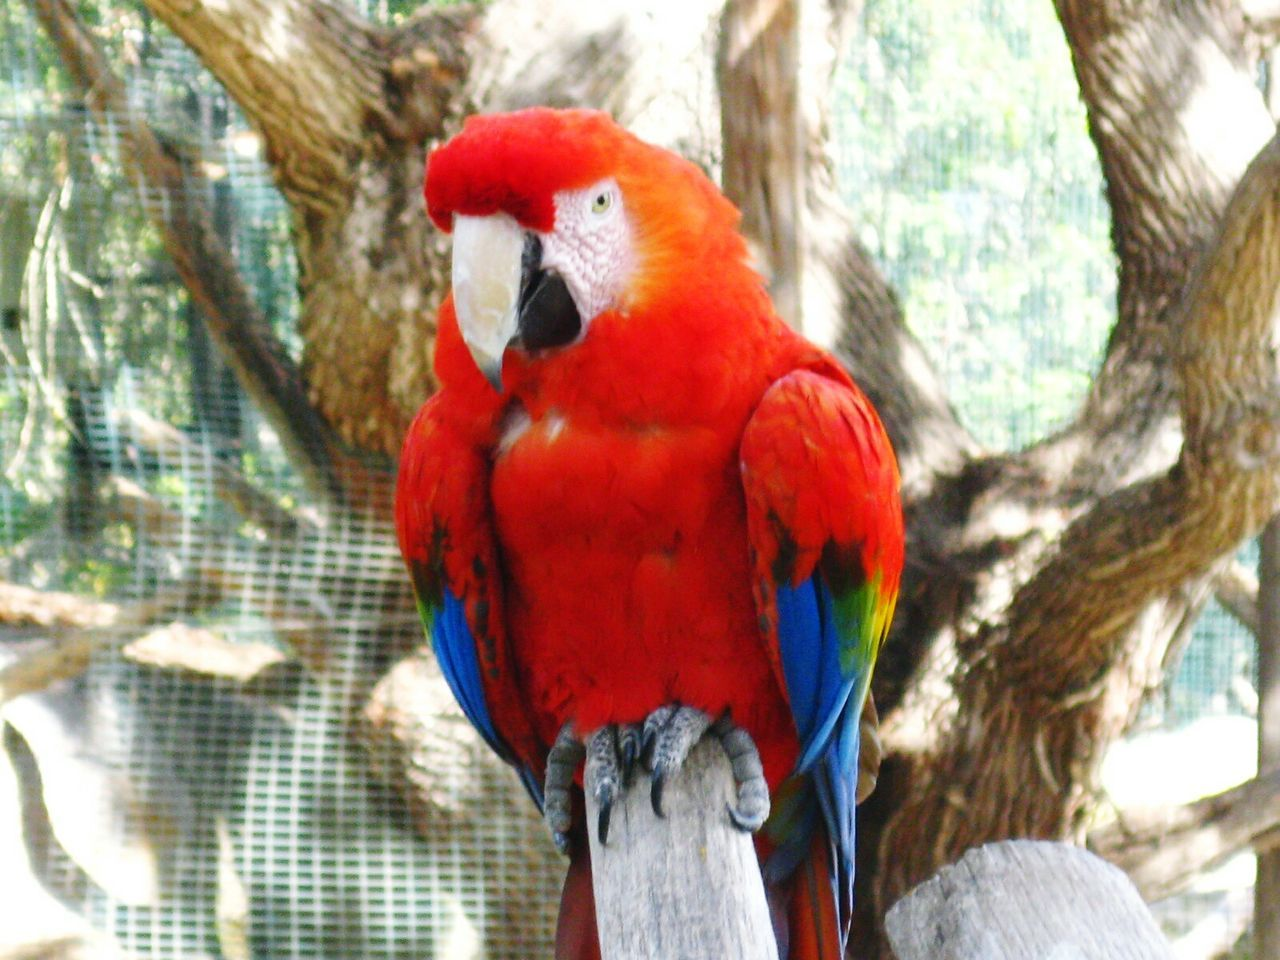 scarlet macaw, macaw, parrot, red, bird, animal themes, animals in the wild, tree, one animal, perching, animal wildlife, focus on foreground, day, nature, no people, outdoors, close-up, beauty in nature, gold and blue macaw